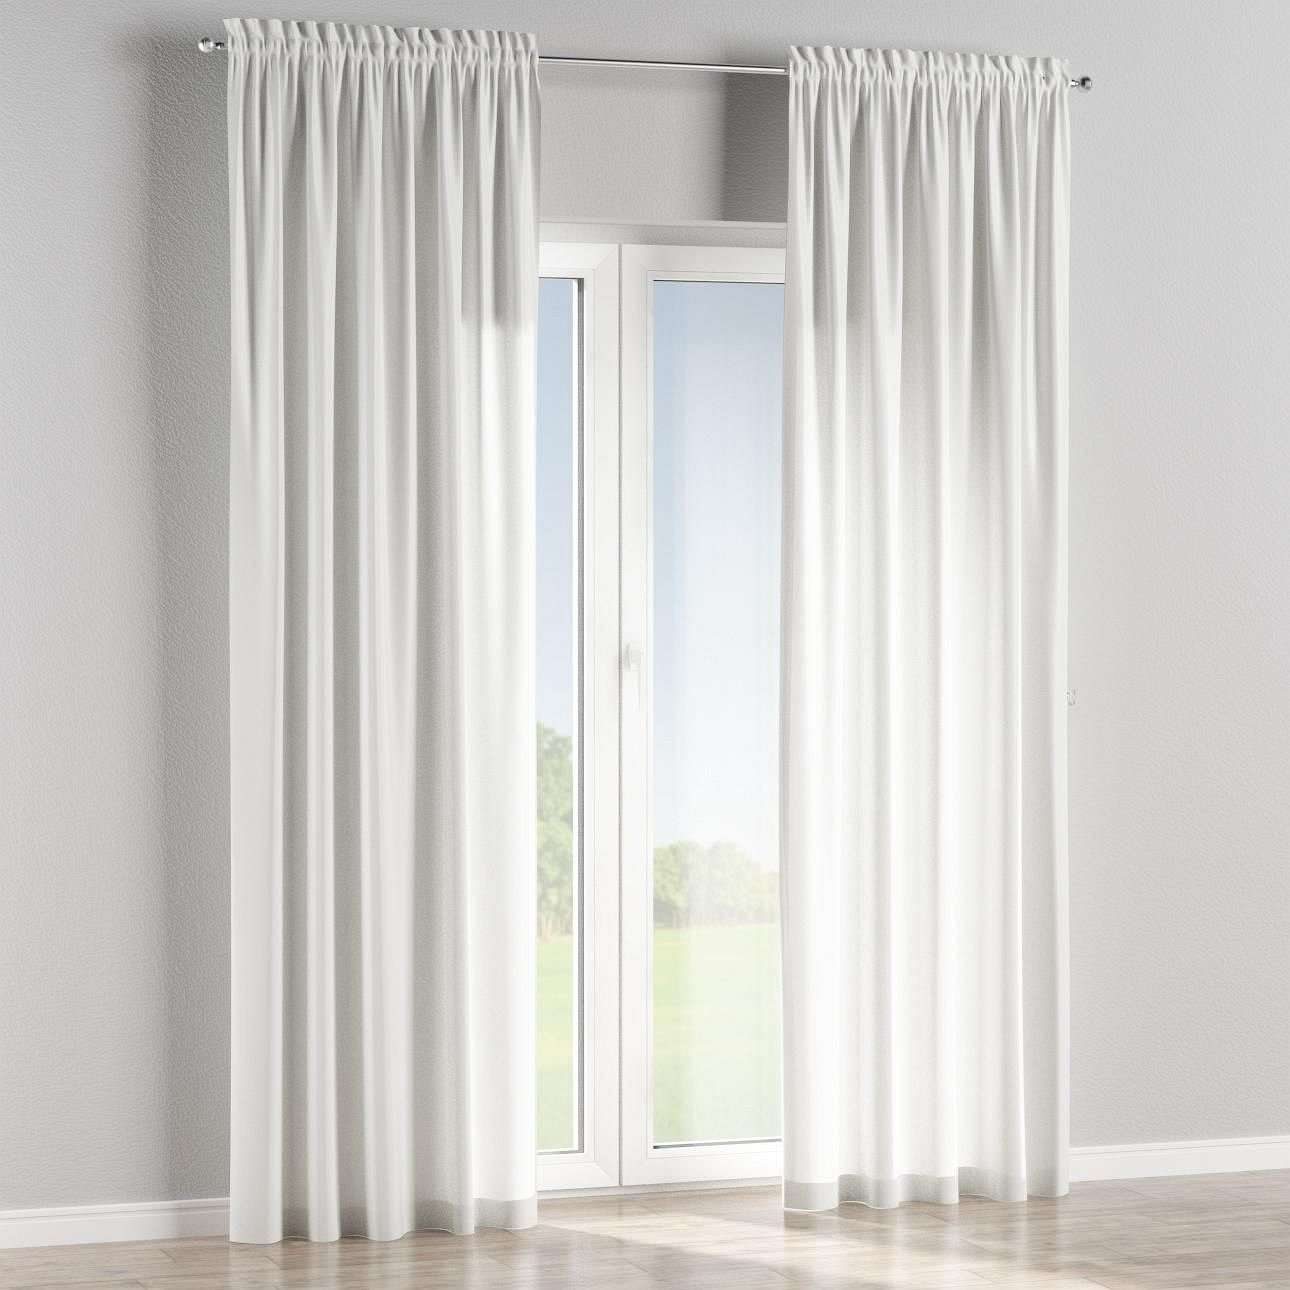 Slot and frill lined curtains in collection Fleur , fabric: 137-56